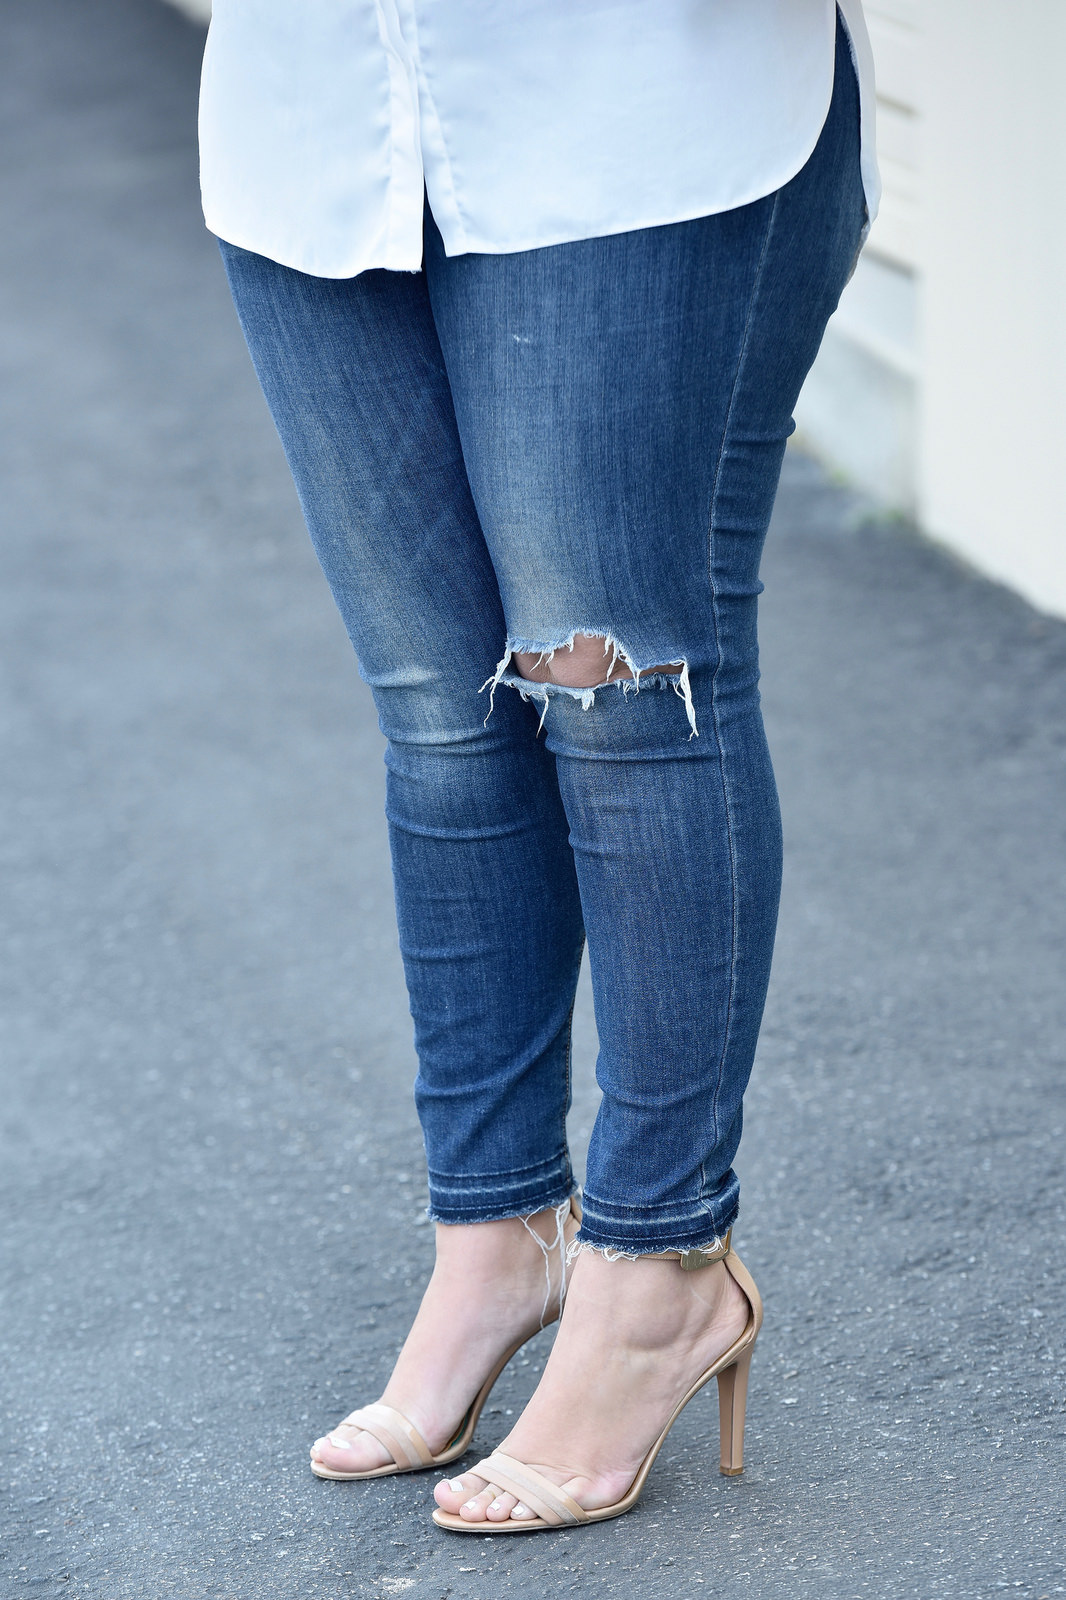 Distressed jeans from Old Navy via Girl With Curves.